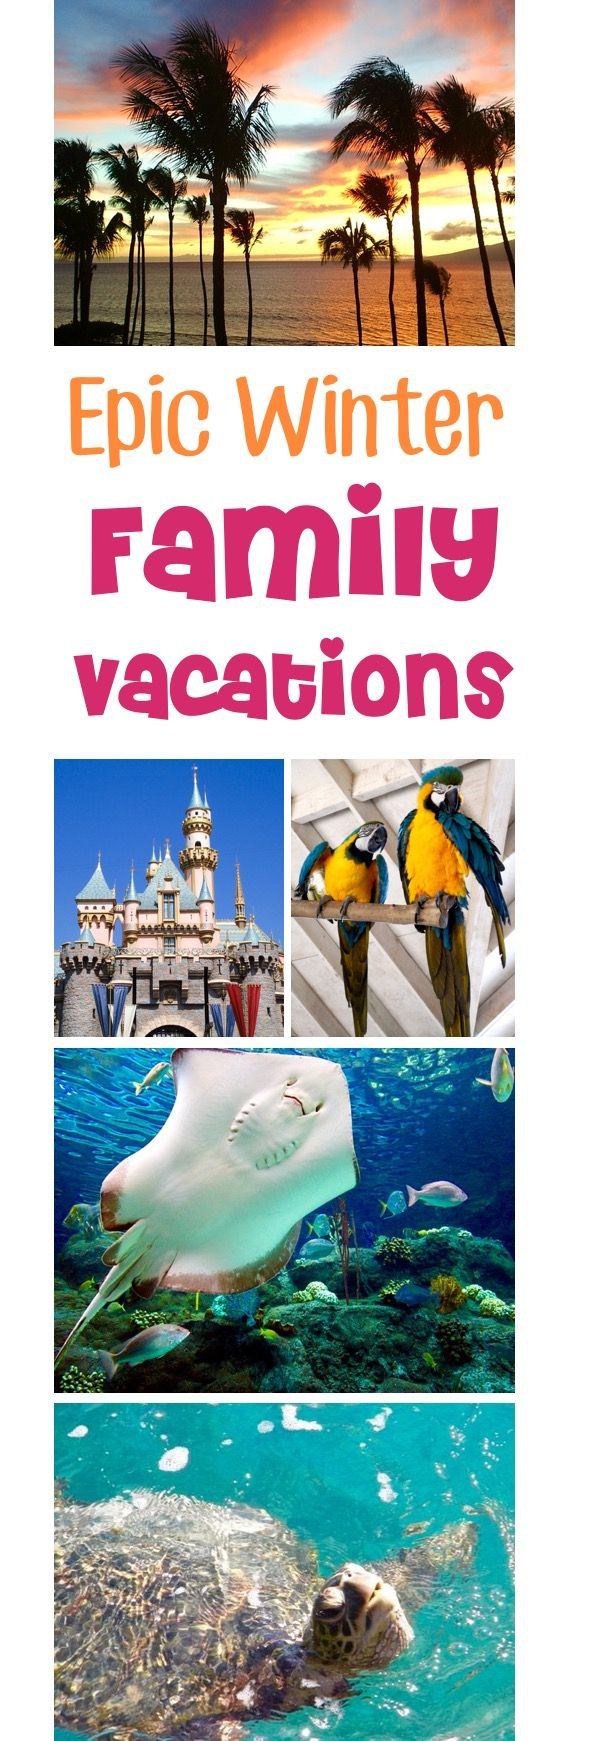 Winter Family Vacation Ideas Top Destinations TRAVEL - 10 great winter vacation ideas